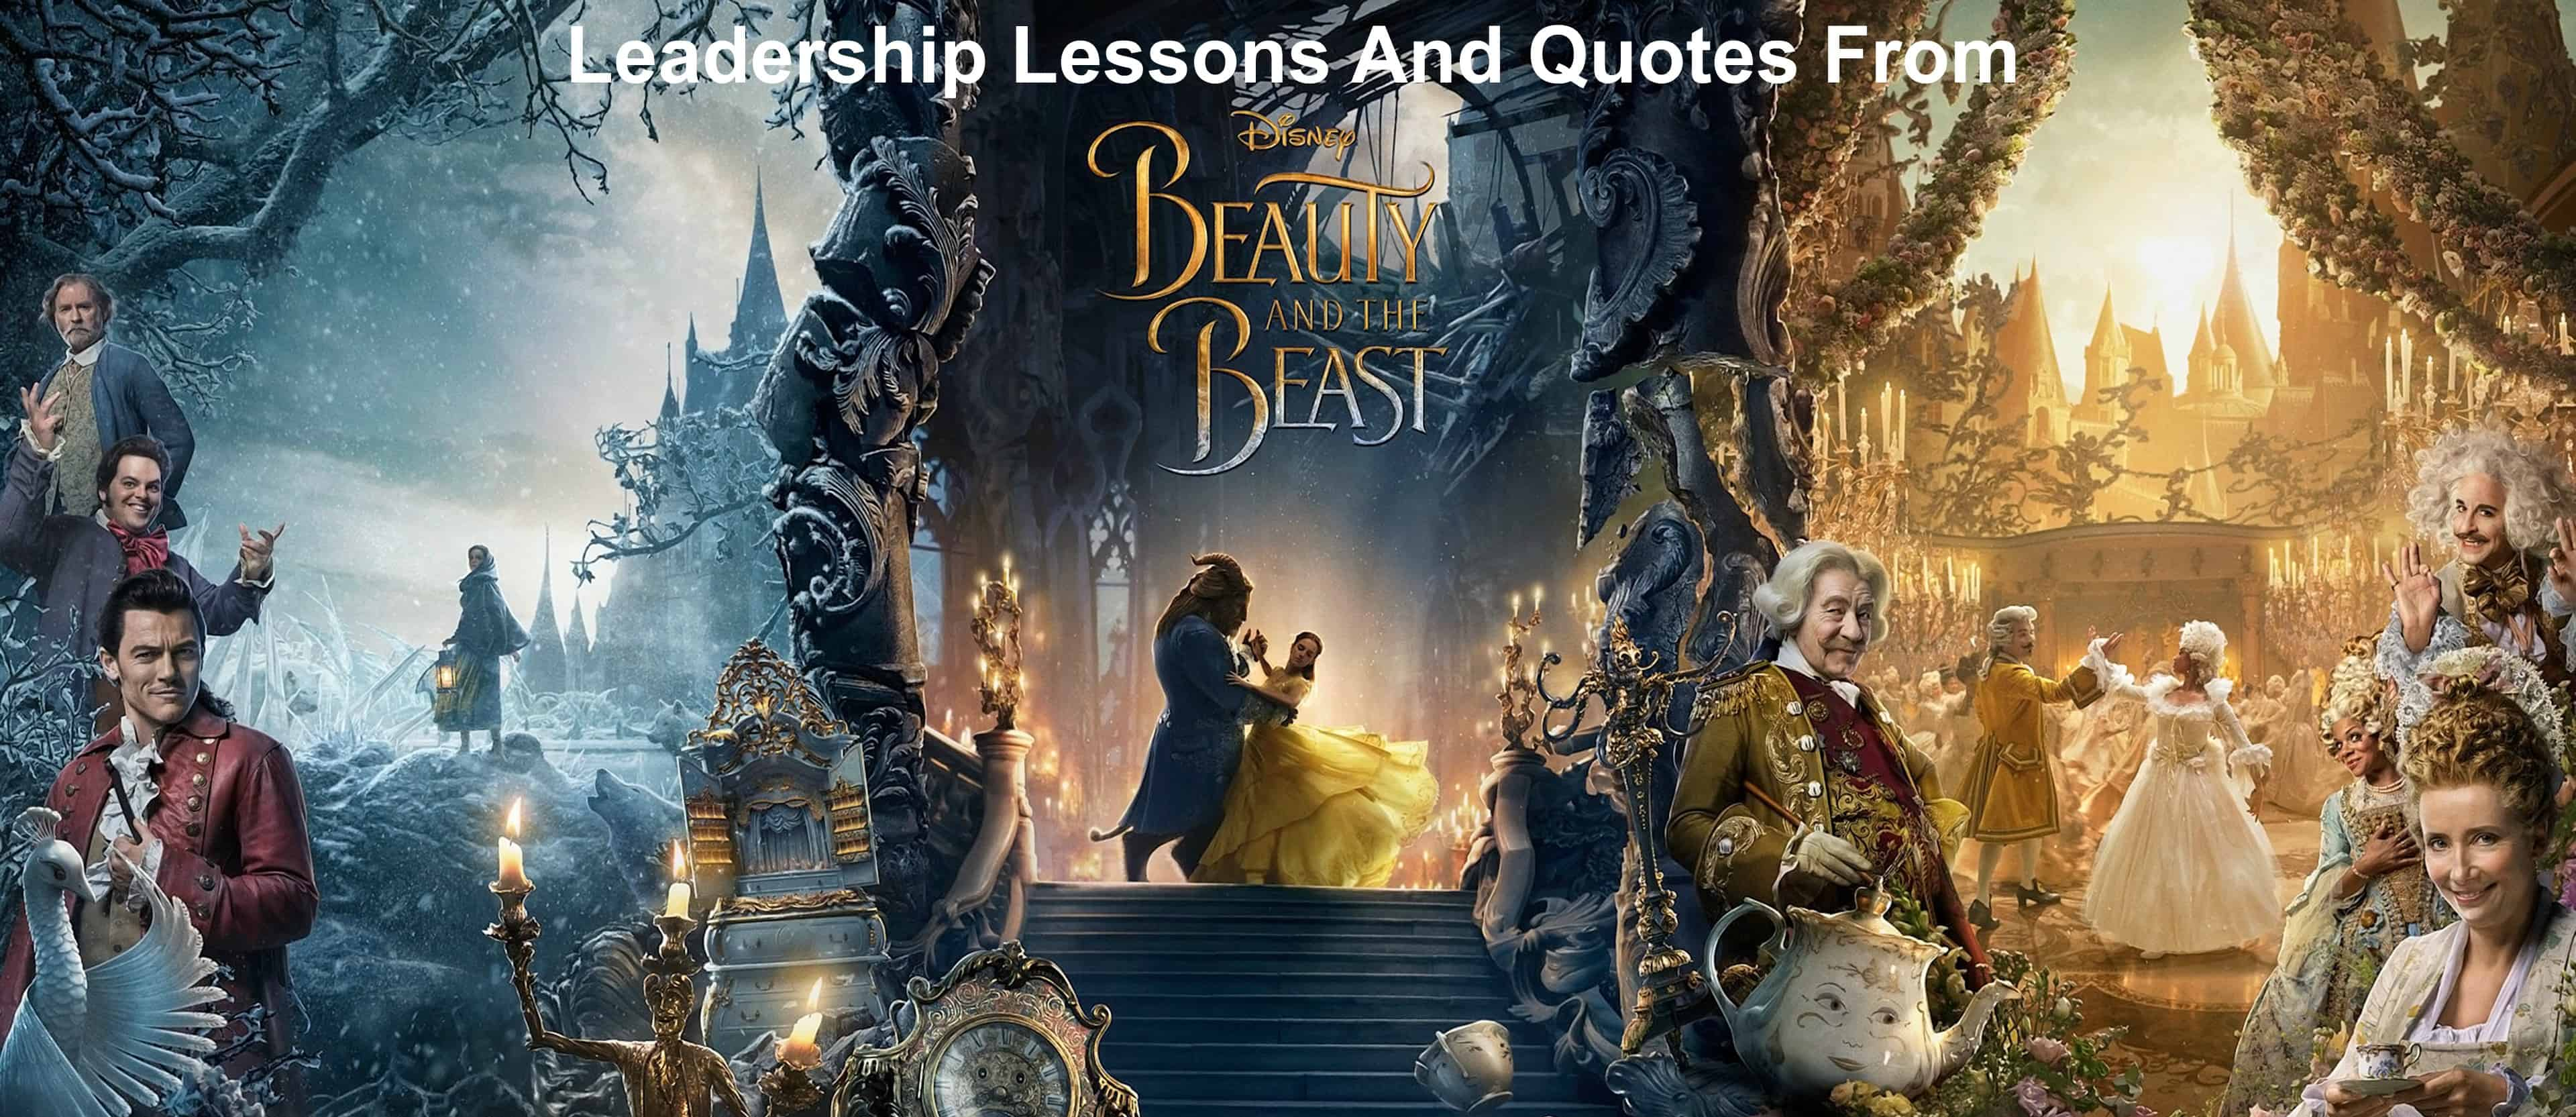 leadership lessons and quotes from Beauty And The Beast